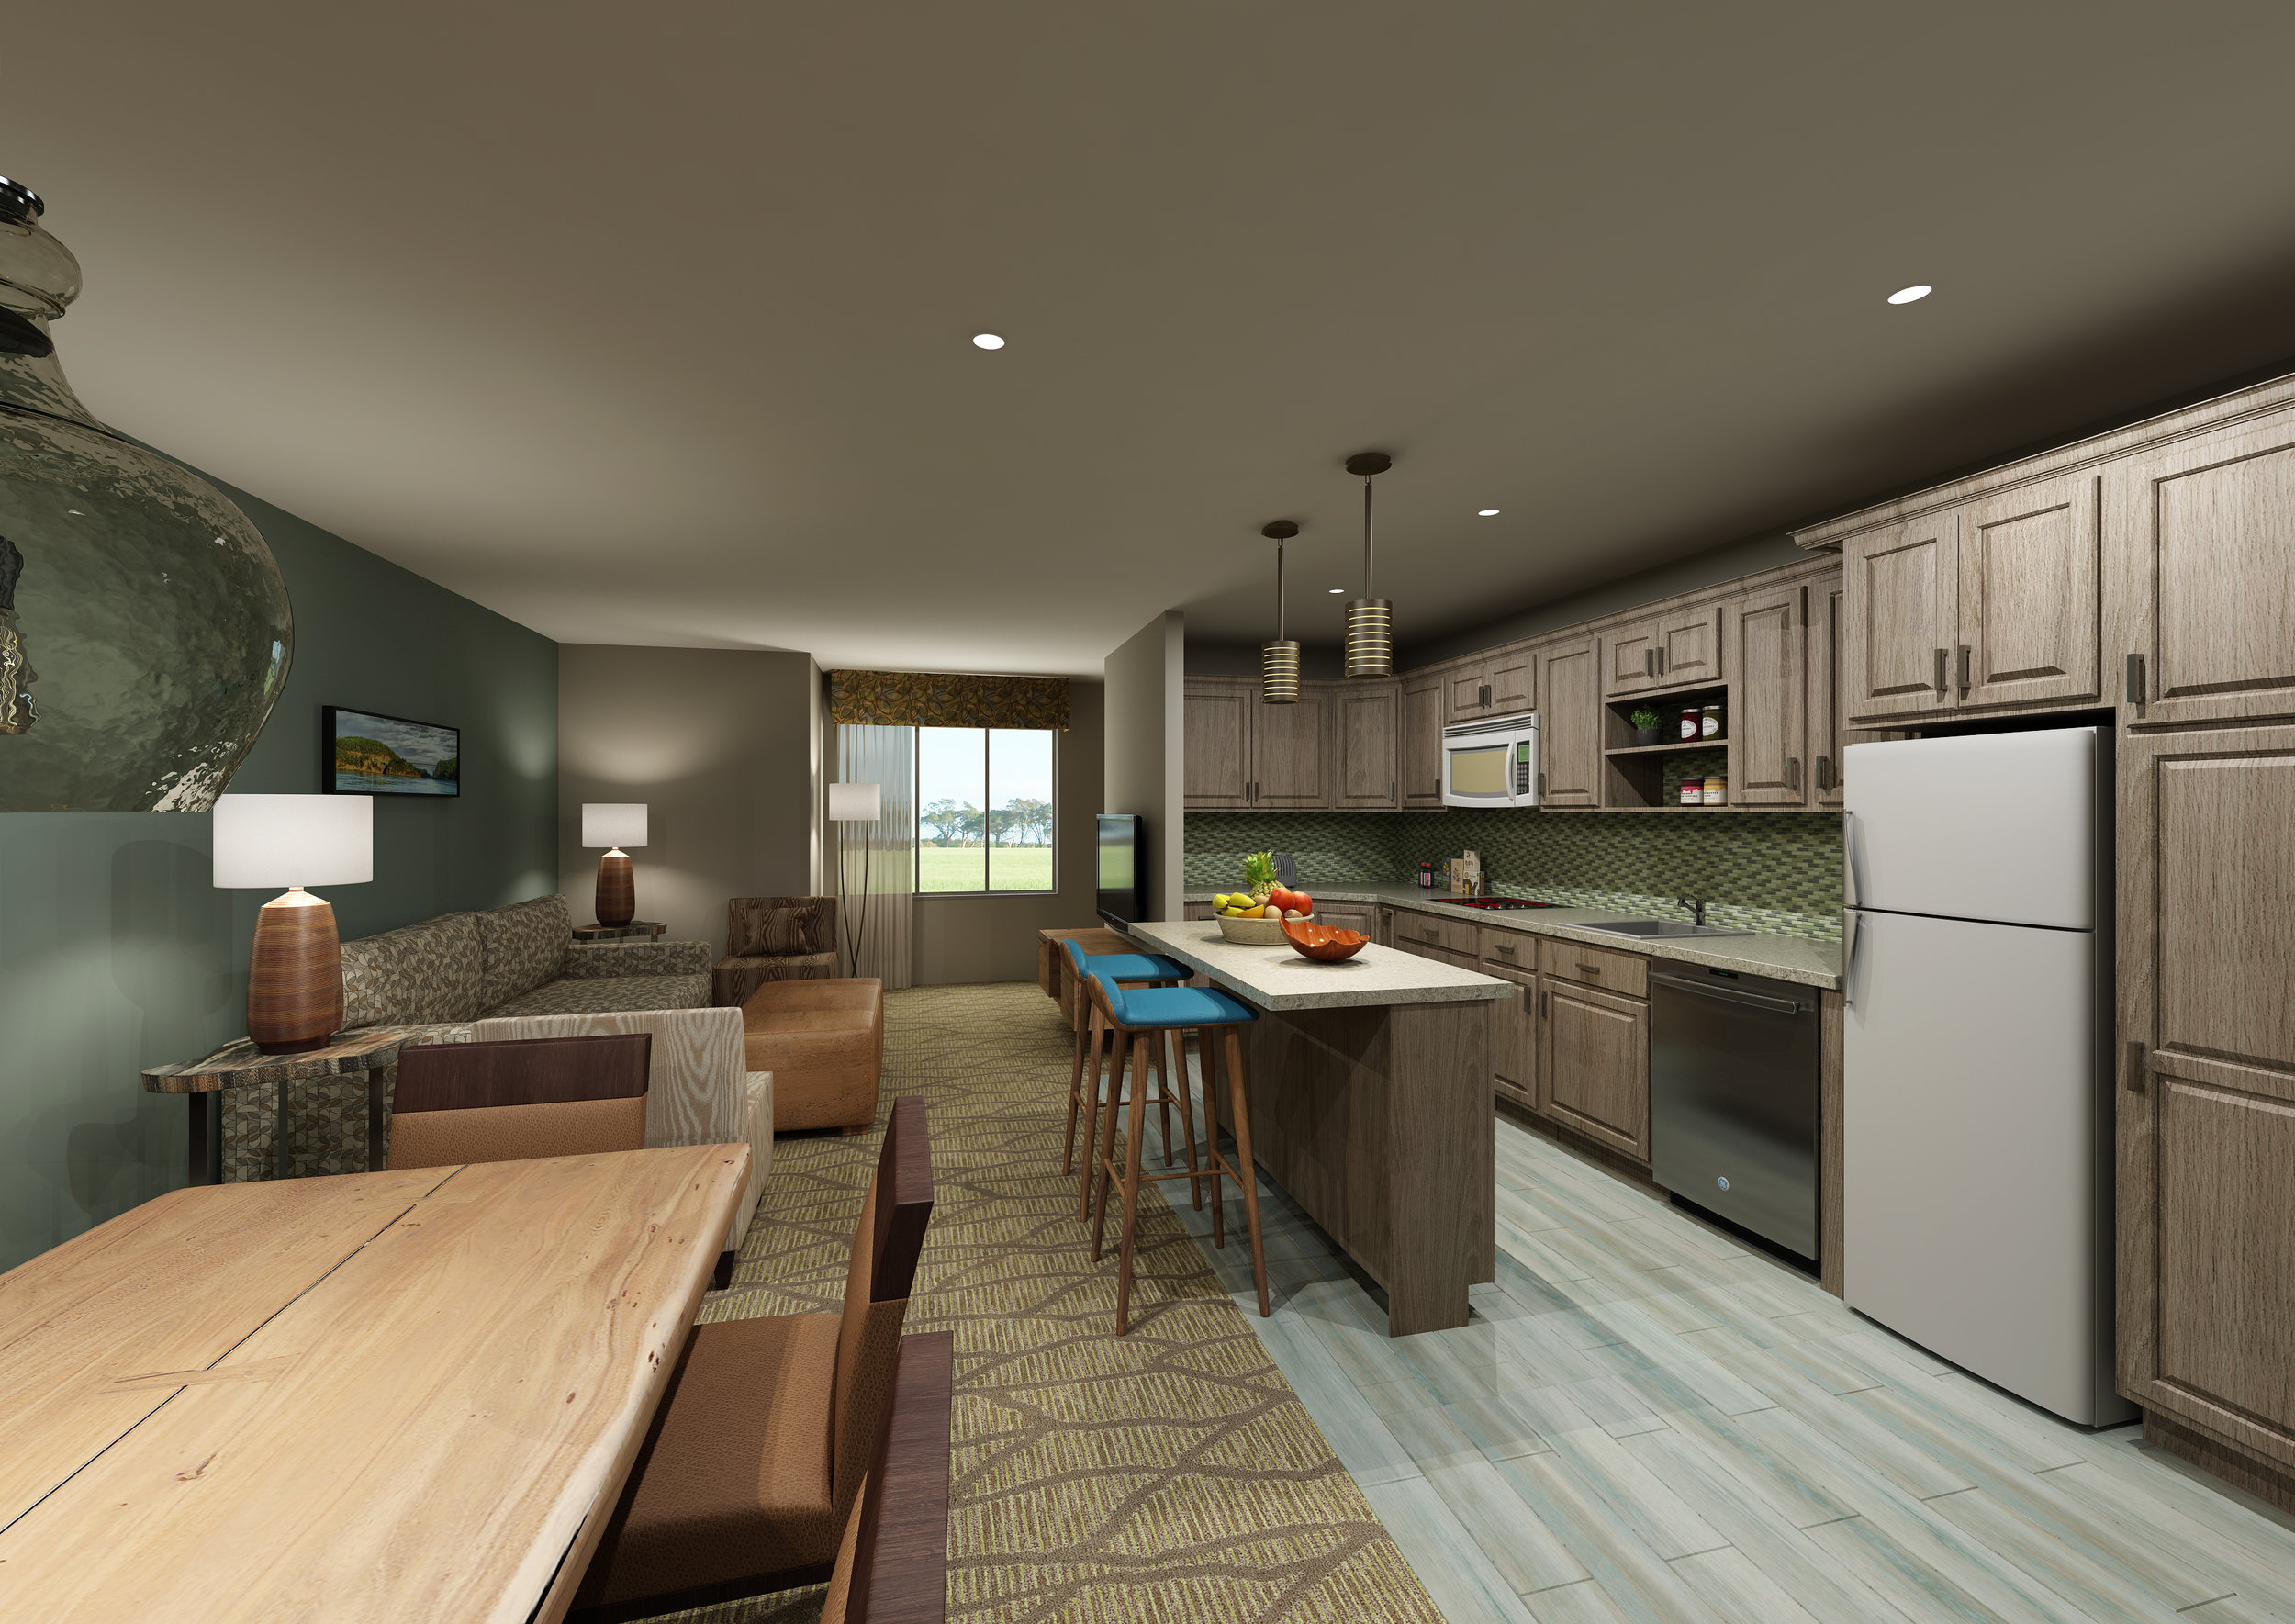 MED_whidbey_family_suite_cam02_render01ps.jpg